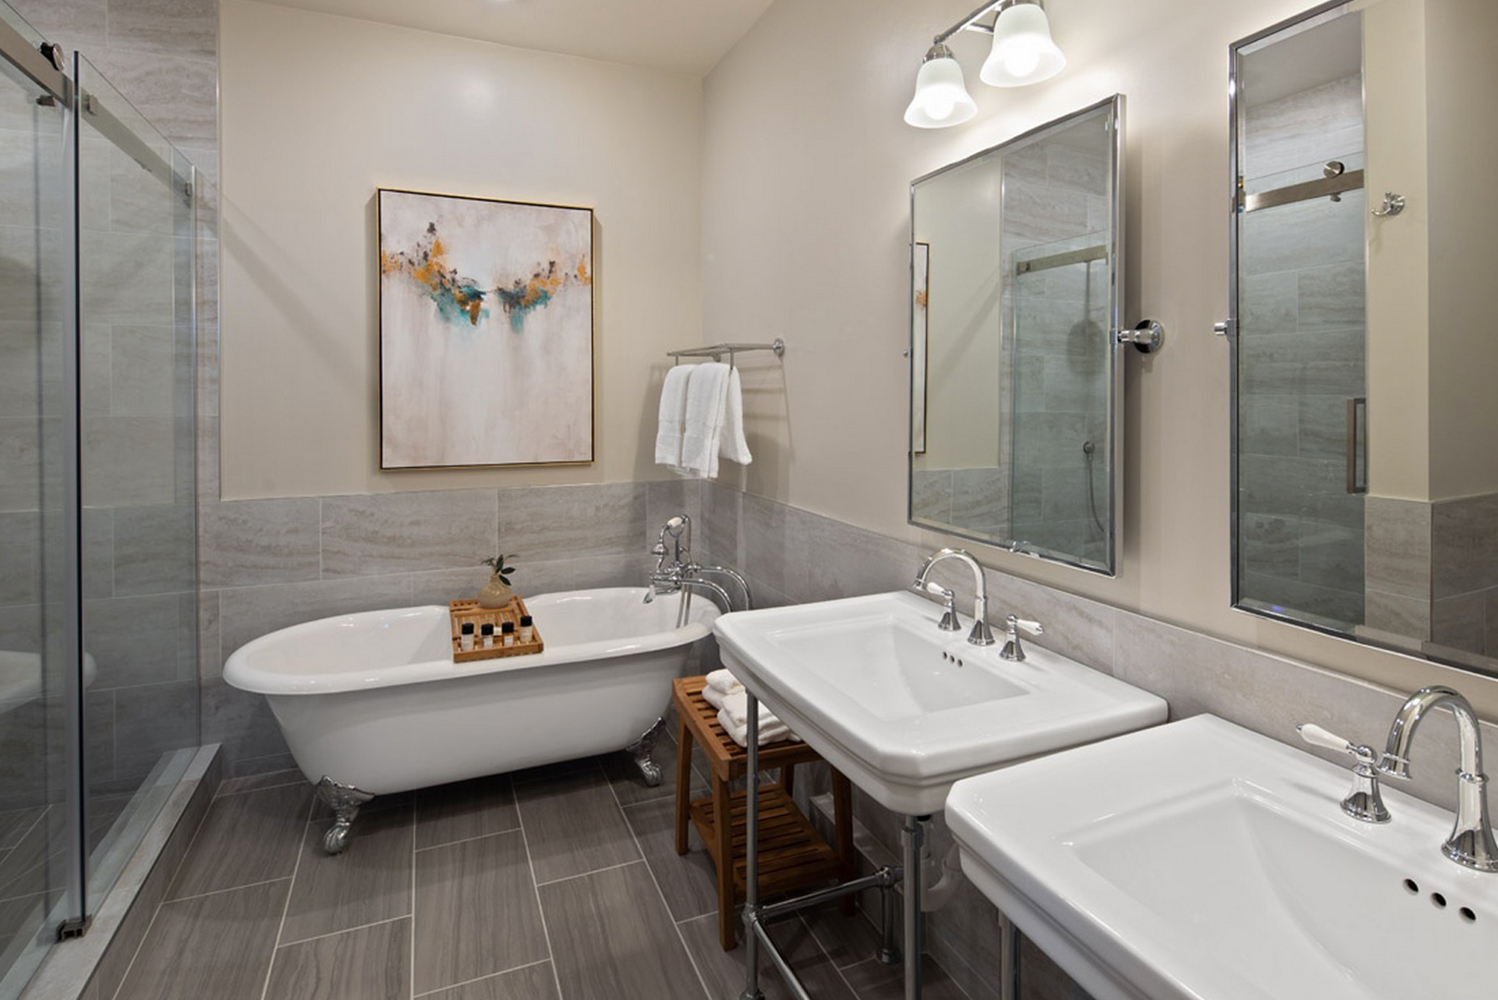 Keeping to the same color palette as the lobby, the rooms have 10-foot ceilings, plantation shutters, bathrooms with walk-in showers and makeup mirrors.